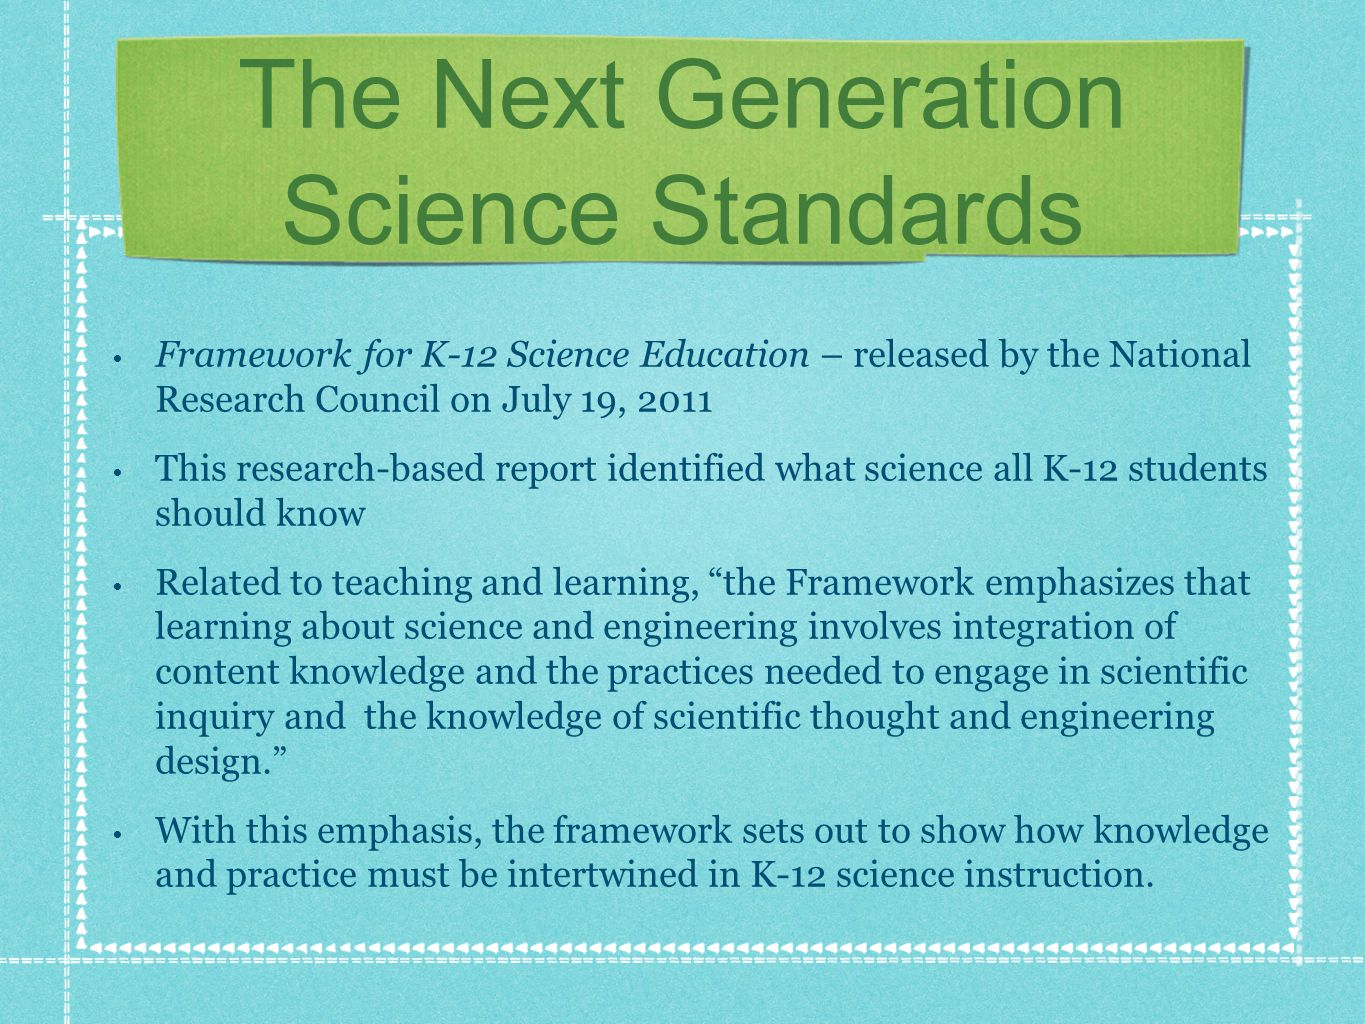 The Next Generation Science Standards Framework for K-12 Science Education – released by the National Research Council on July 19, 2011 This research-based report identified what science all K-12 students should know Related to teaching and learning, the Framework emphasizes that learning about science and engineering involves integration of content knowledge and the practices needed to engage in scientific inquiry and the knowledge of scientific thought and engineering design.